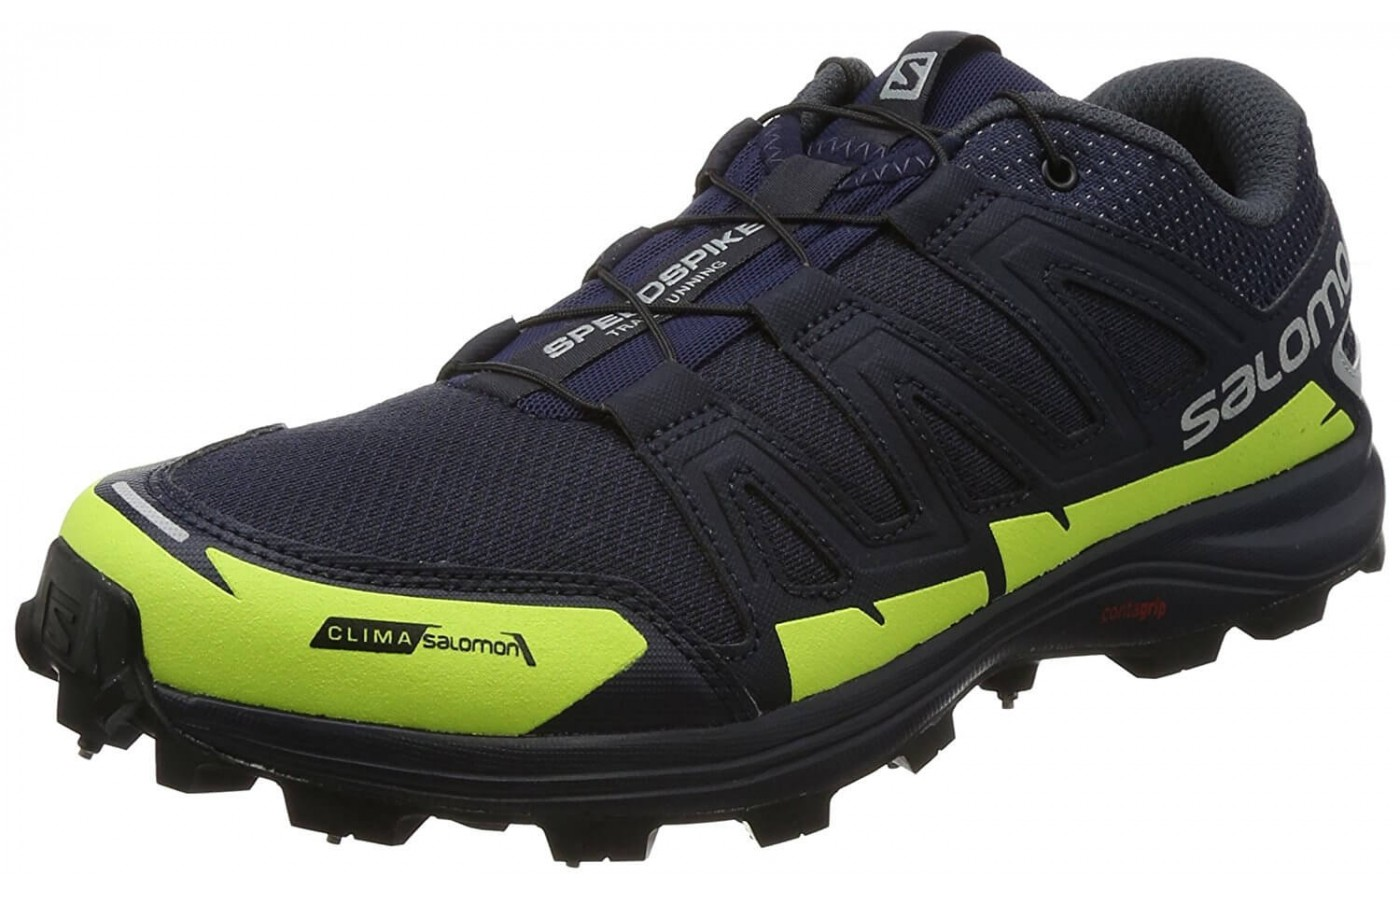 The Salomon Speedspike CS has an EVA midsole